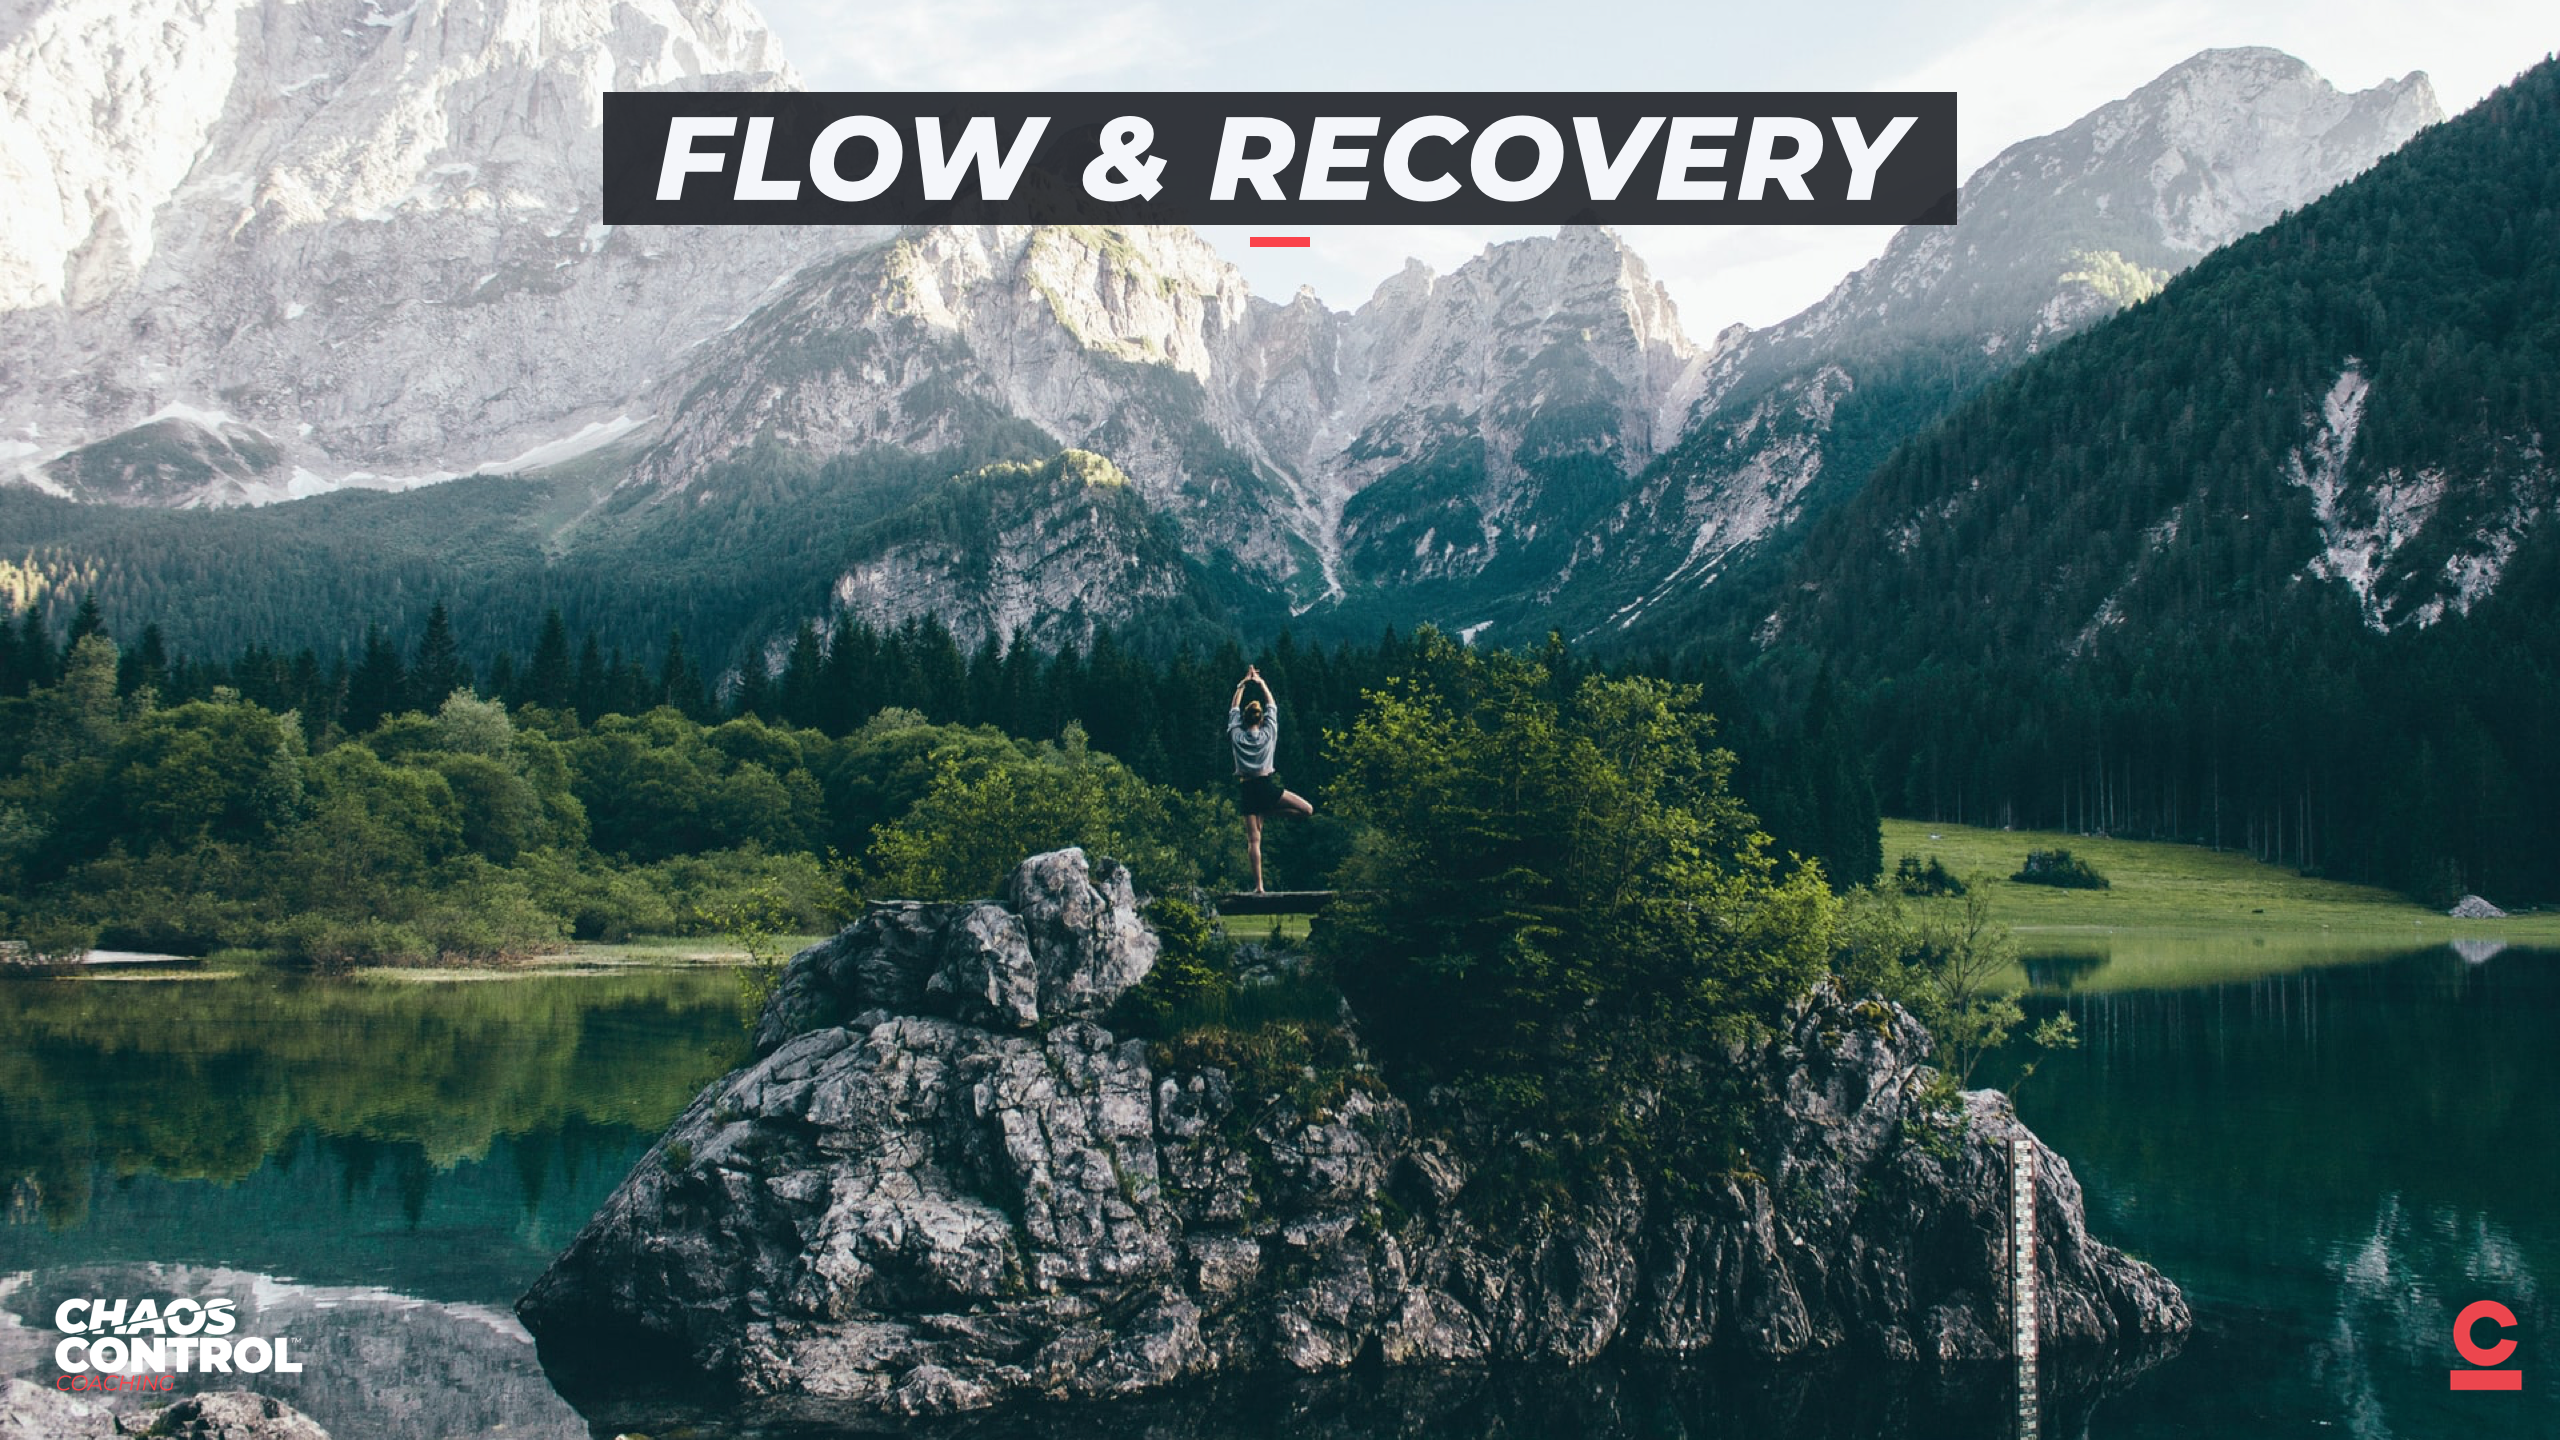 Flow & Recovery: The Back-End of the Flow Cycle